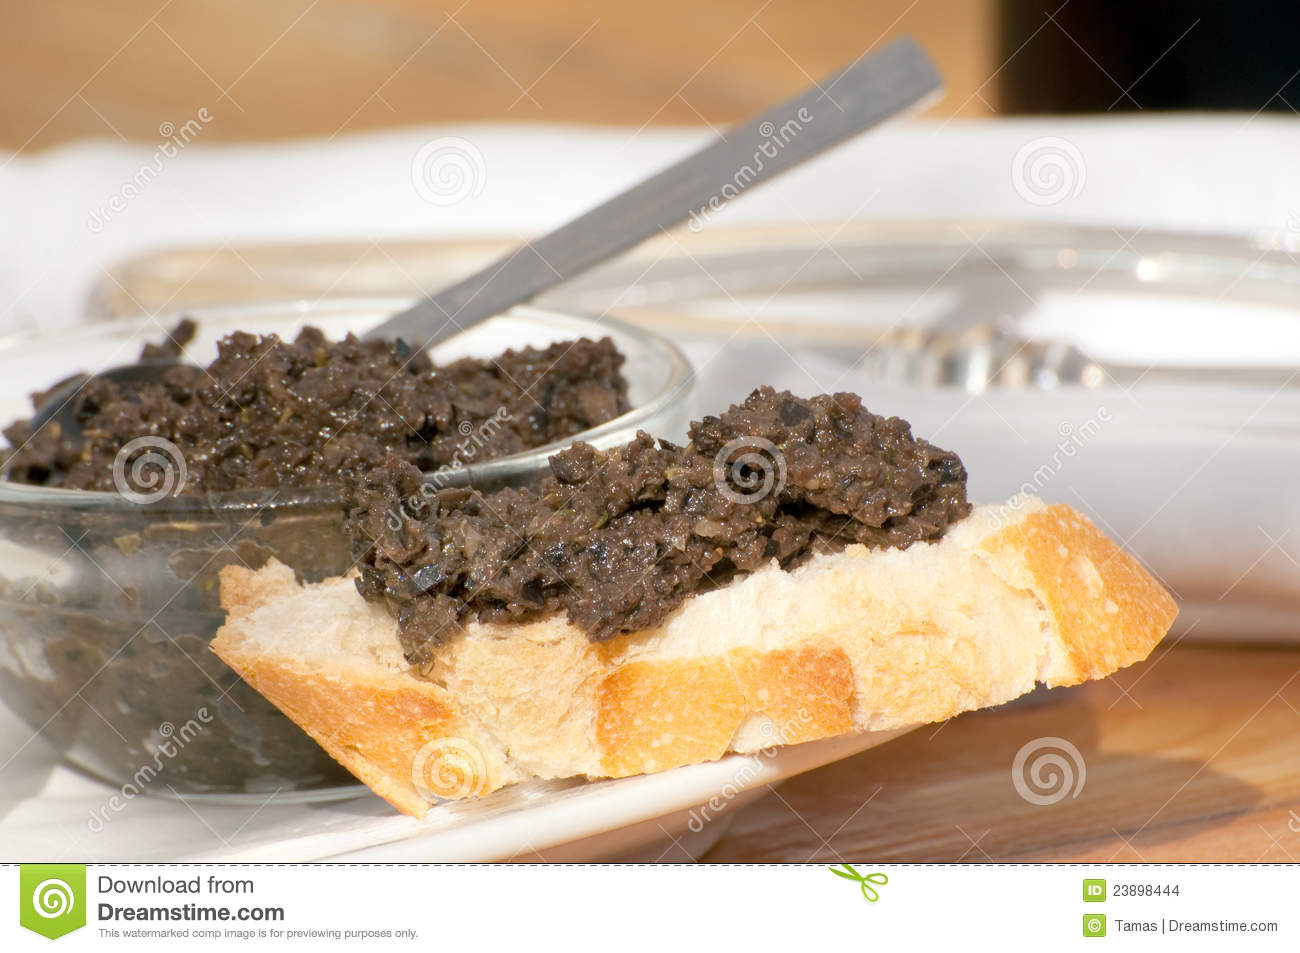 Oliwny tapenade